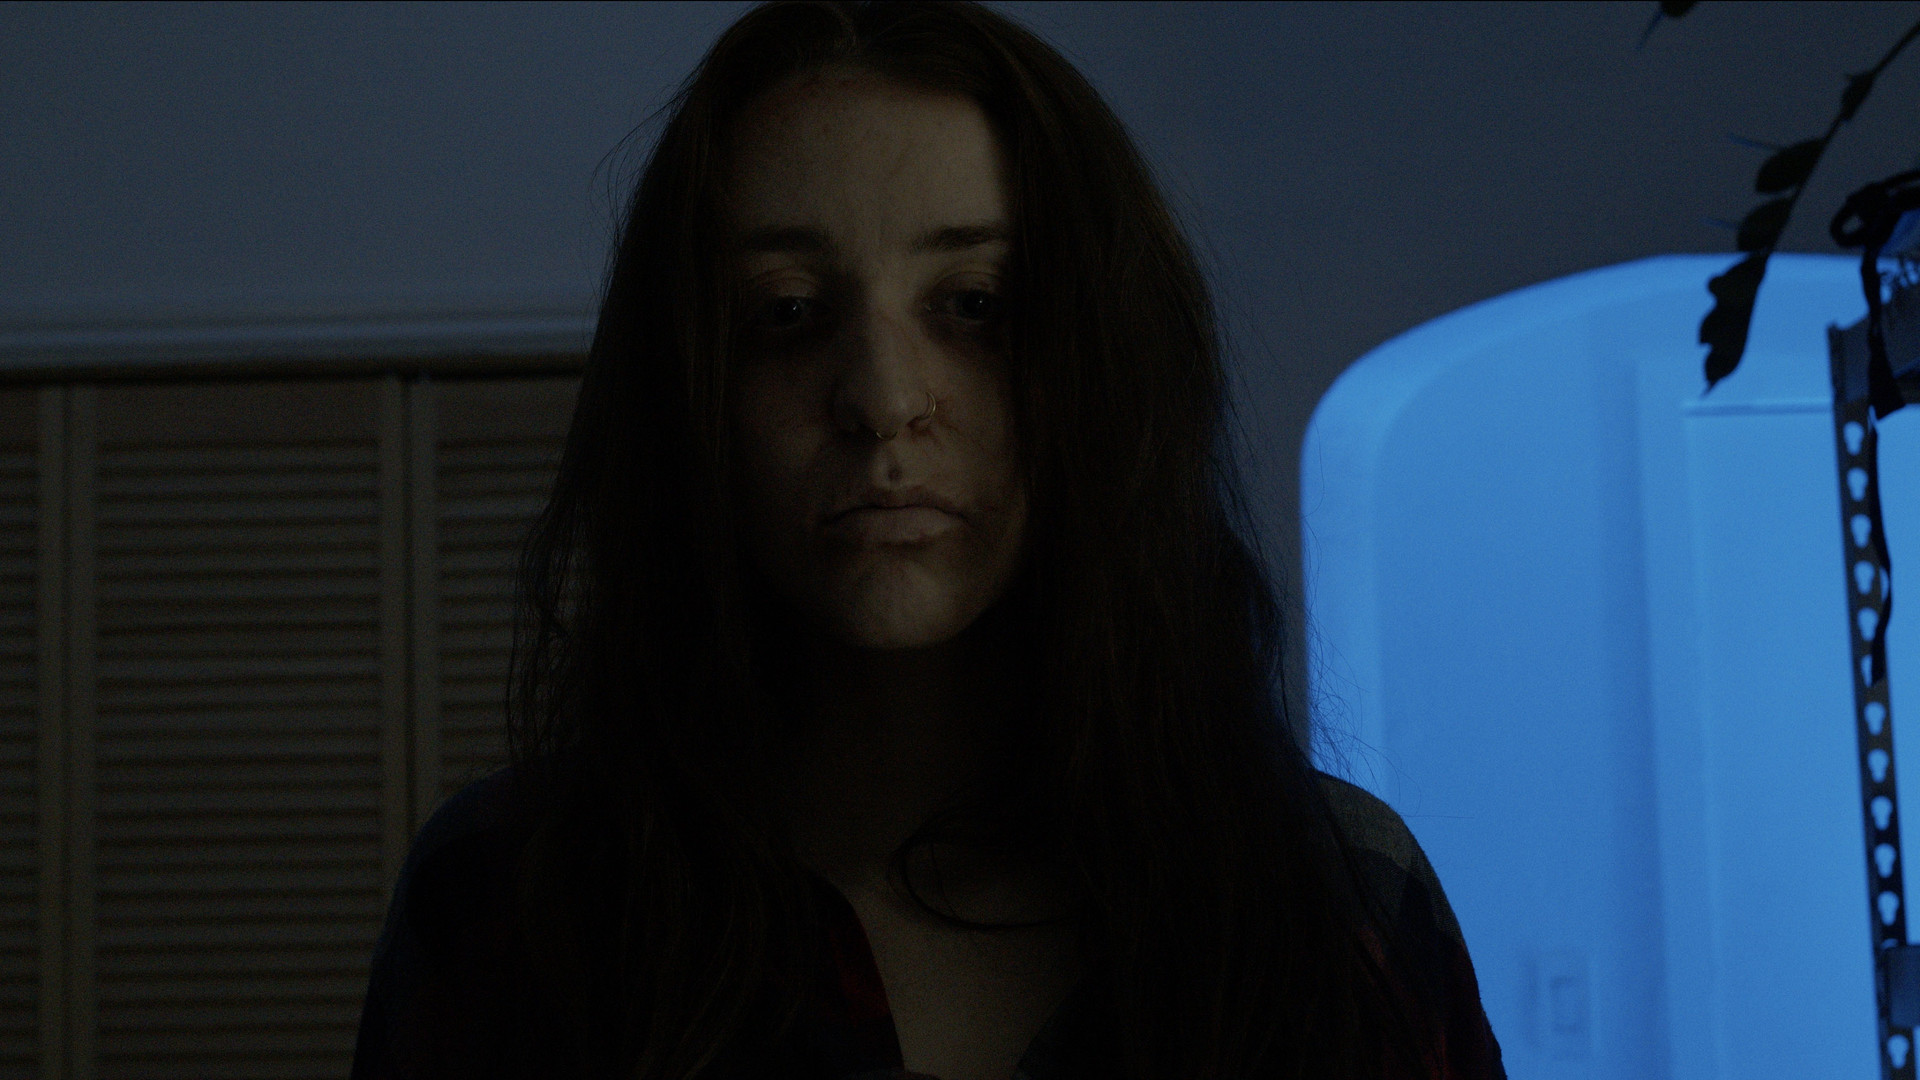 'The Thought of Death' is the new film by director Braeden Hall. Learn more about the director and the haunting short here.